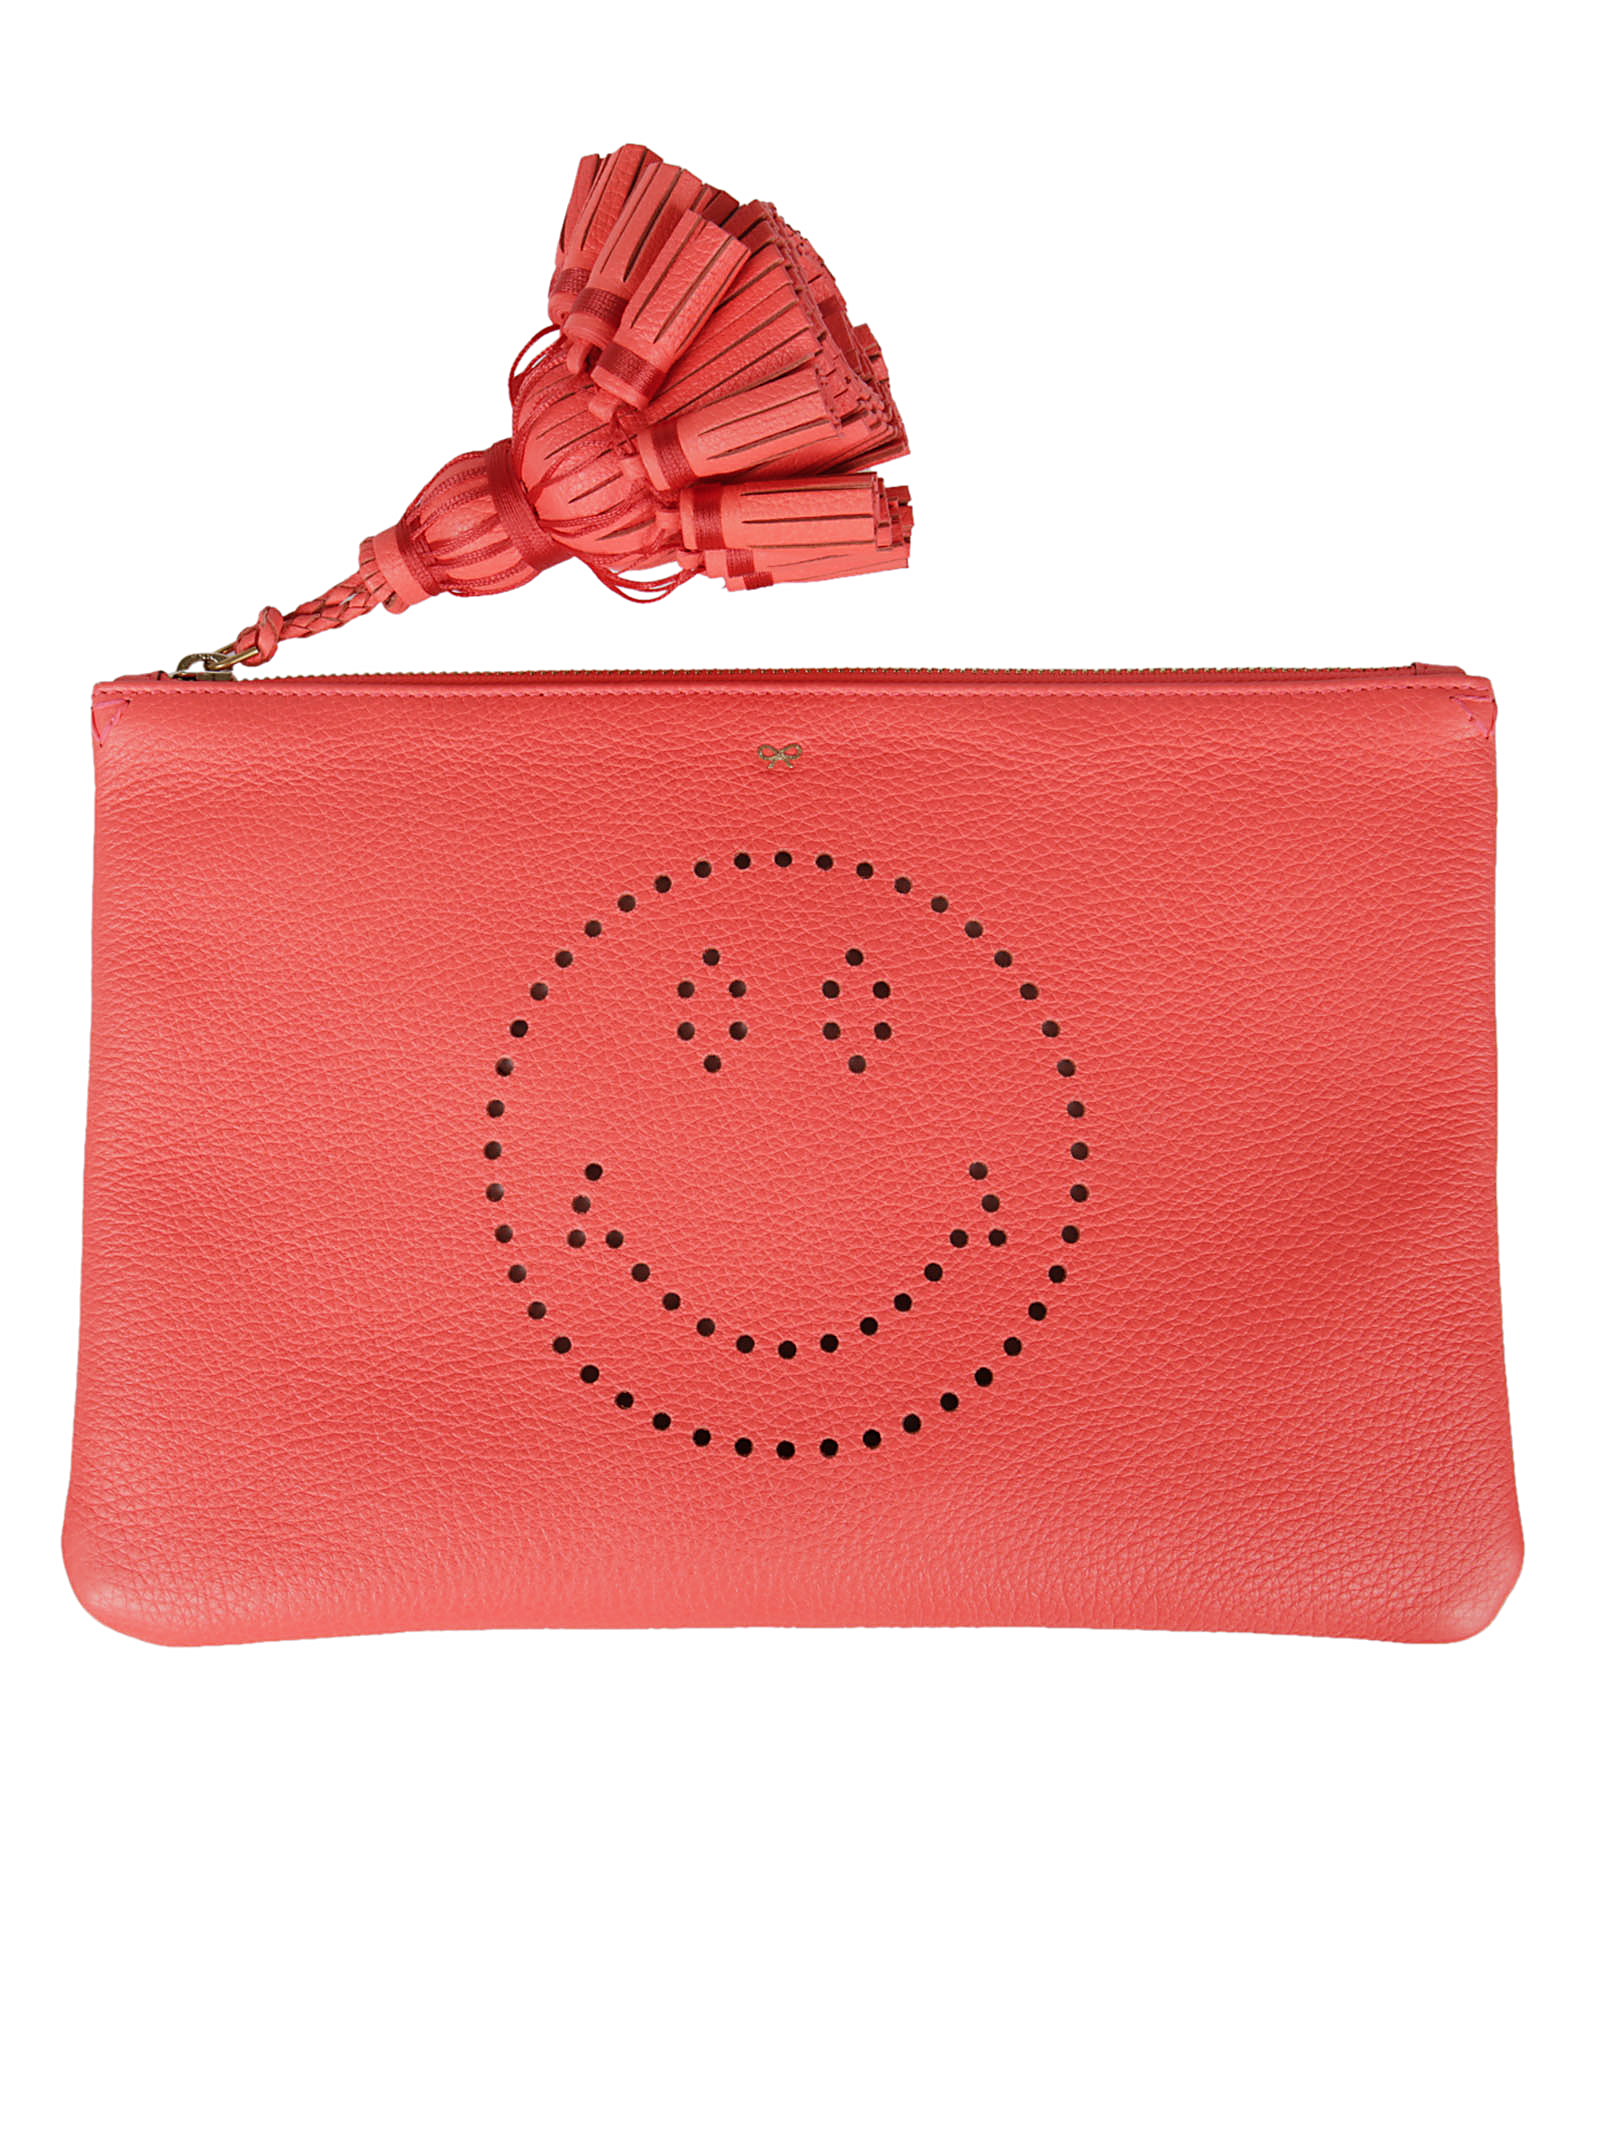 Anya Hindmach GEORGINA SMILEY BAG